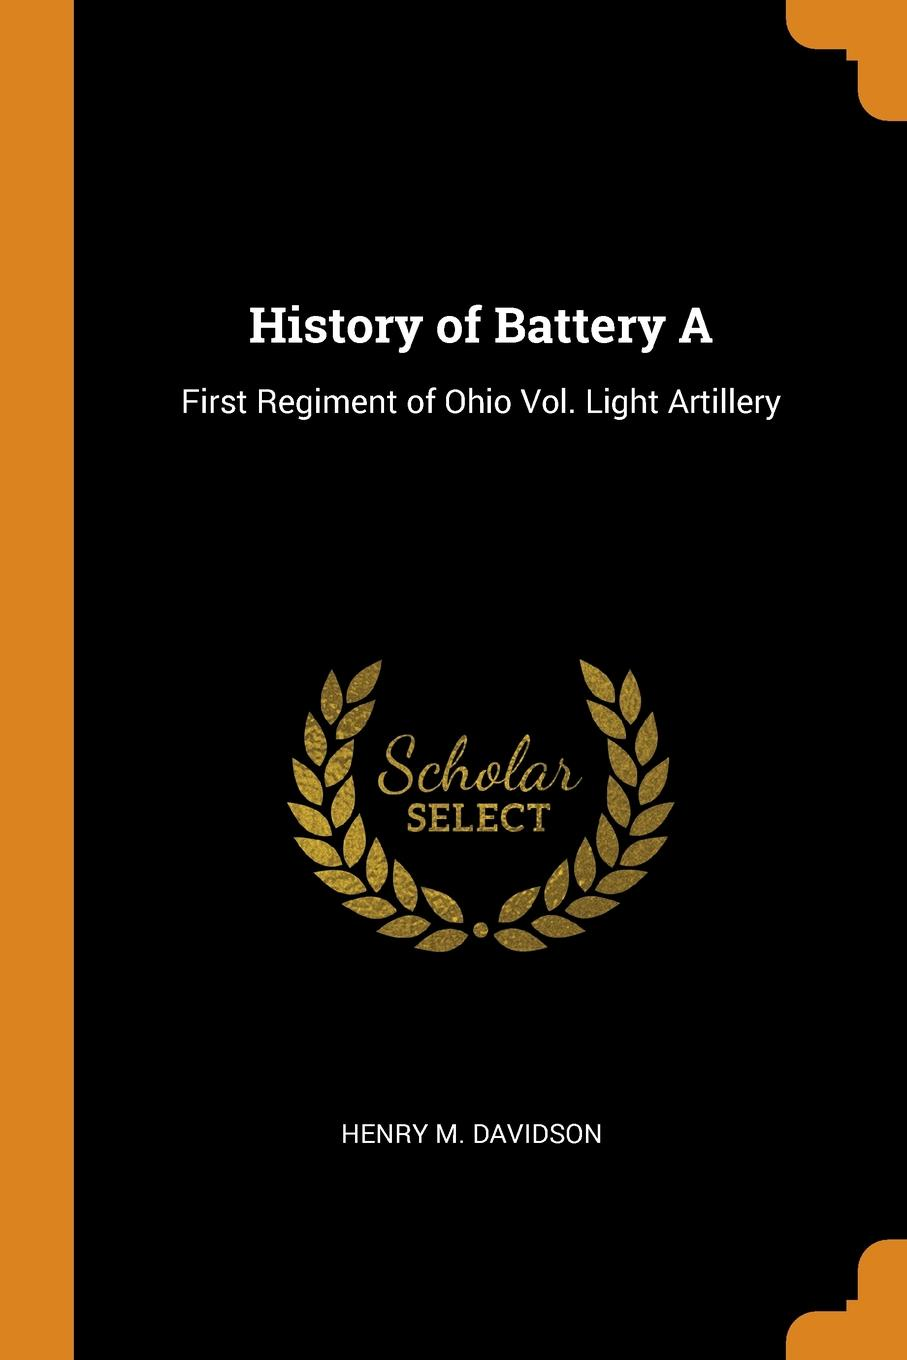 Henry M. Davidson History of Battery A. First Regiment of Ohio Vol. Light Artillery